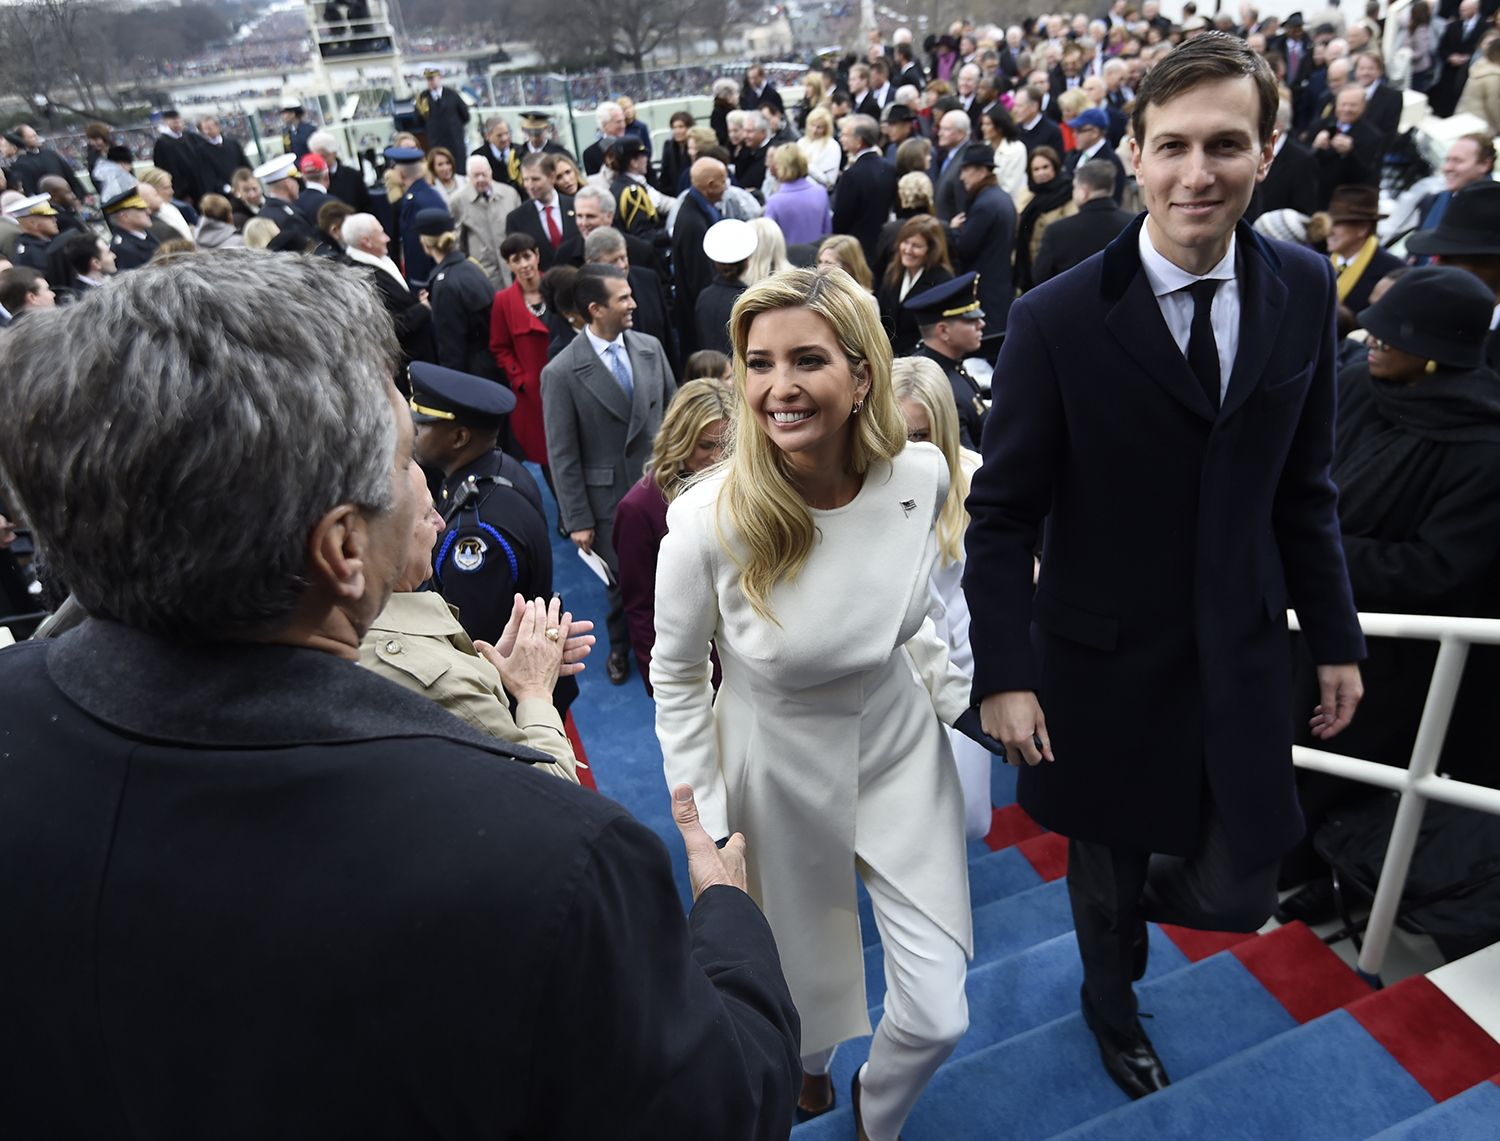 Ivanka Trump's husband has seen his influence dwindle since Trump took  office.